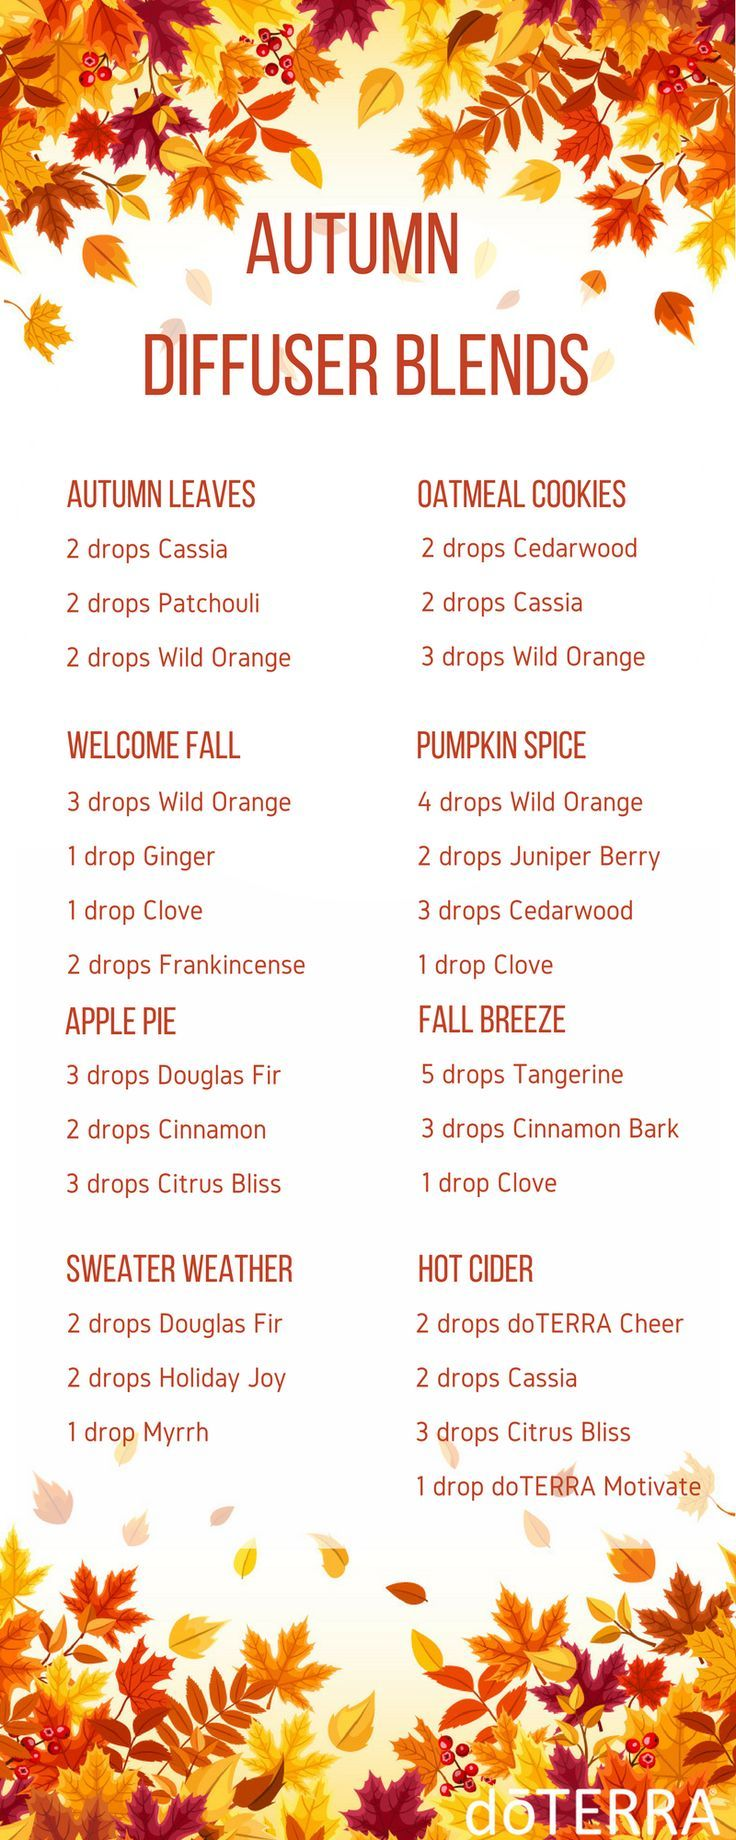 Happy September! Welcome Autumn with these festive diffuser blends!